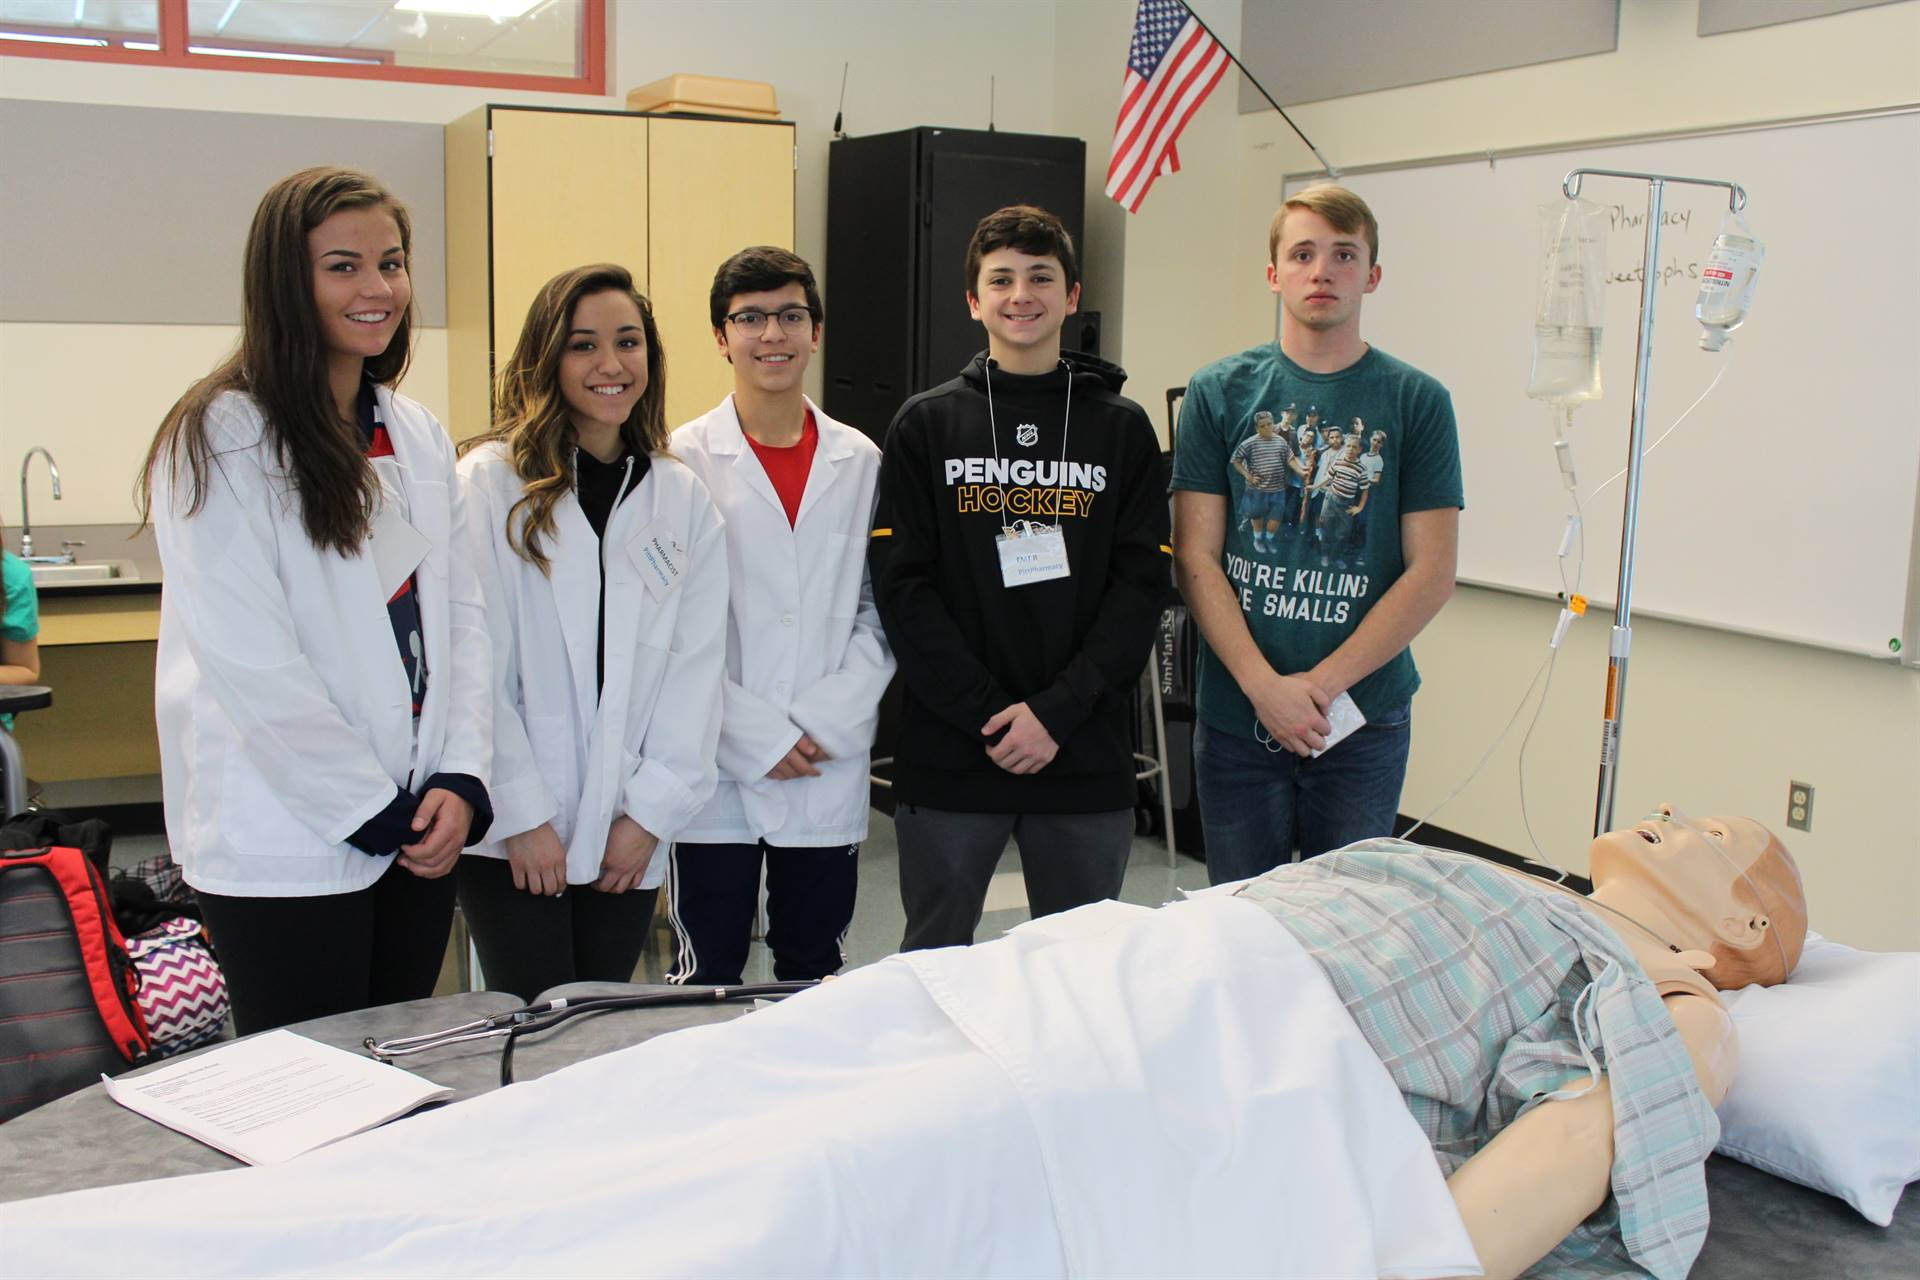 The BPHS students who volunteered for the Sim Man exercise